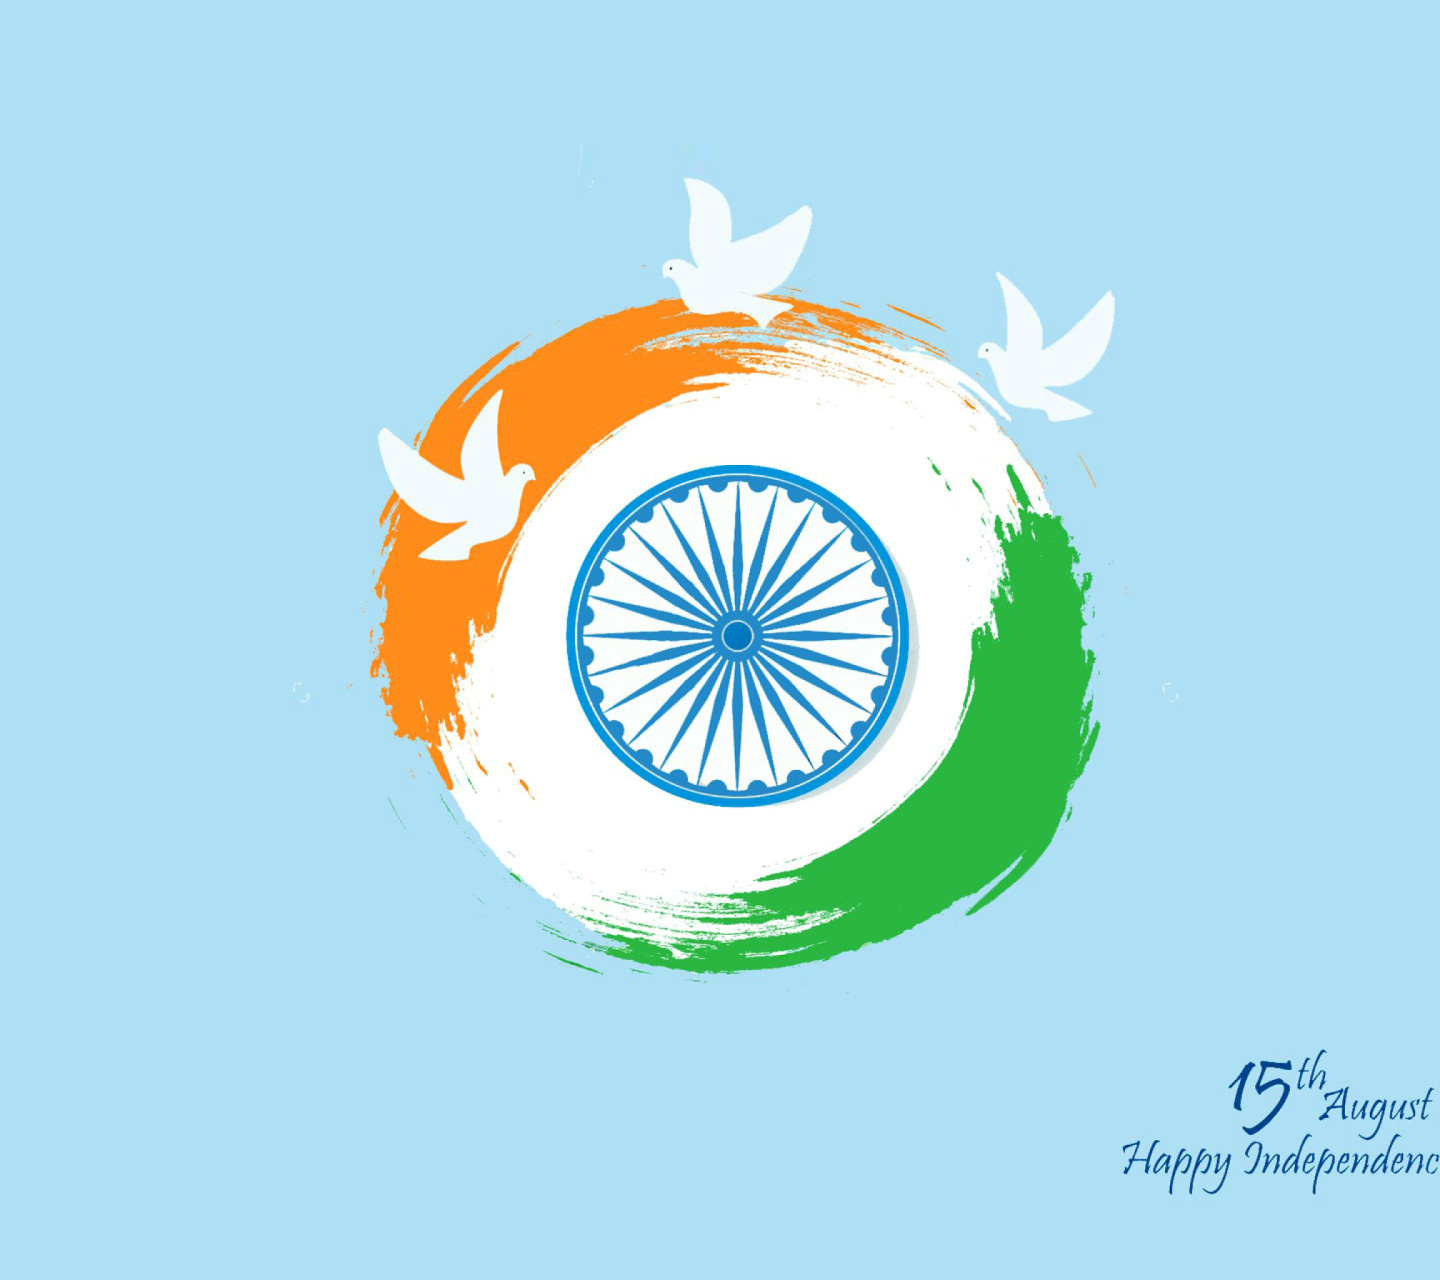 15th August Indian Independence Day wallpaper 1440x1280